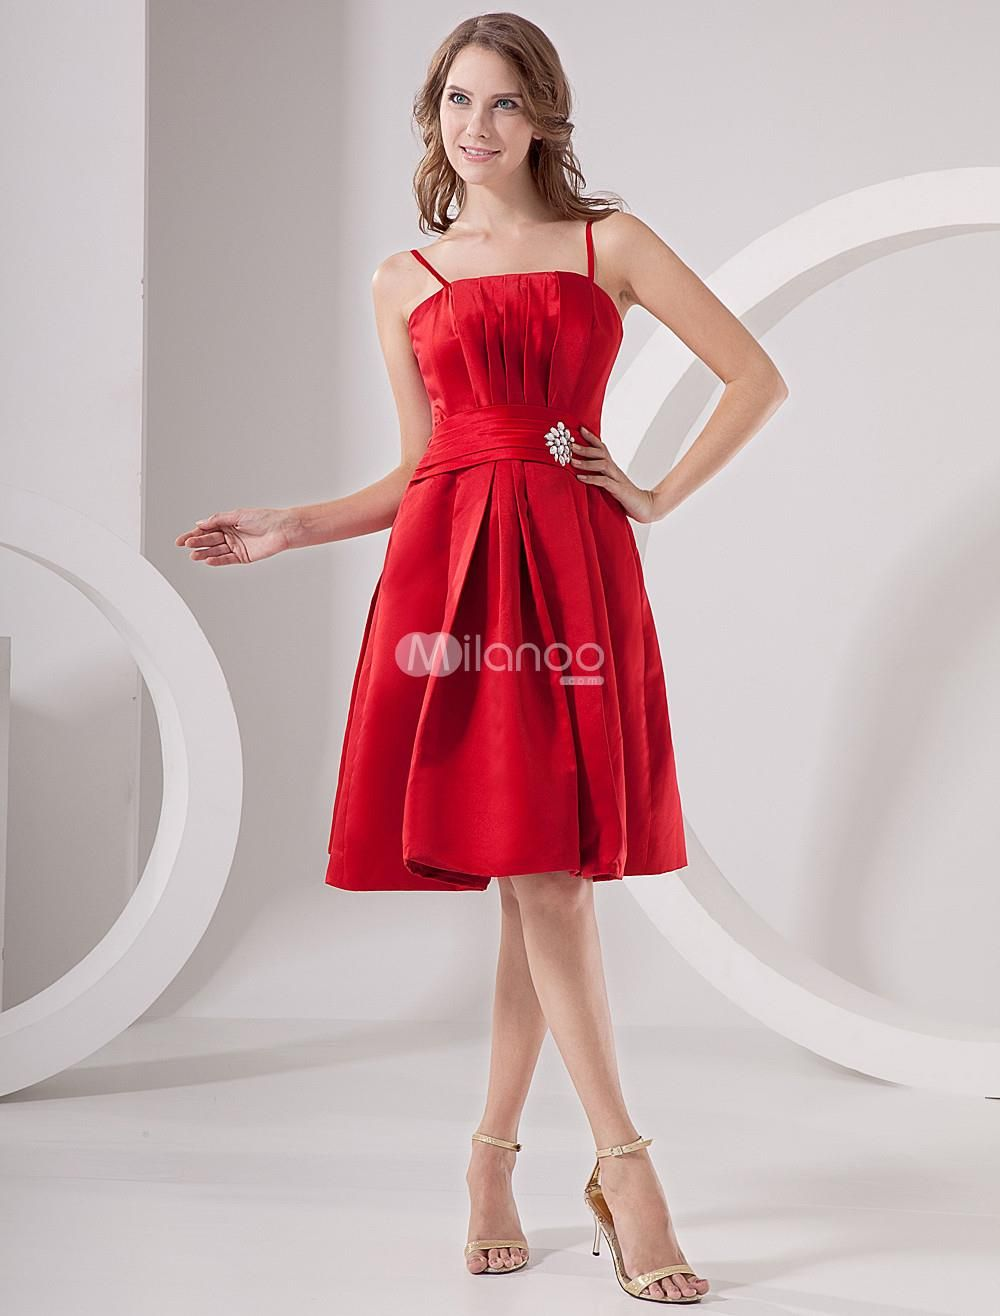 Red satin empire waist strapless homecoming dress if youre looking